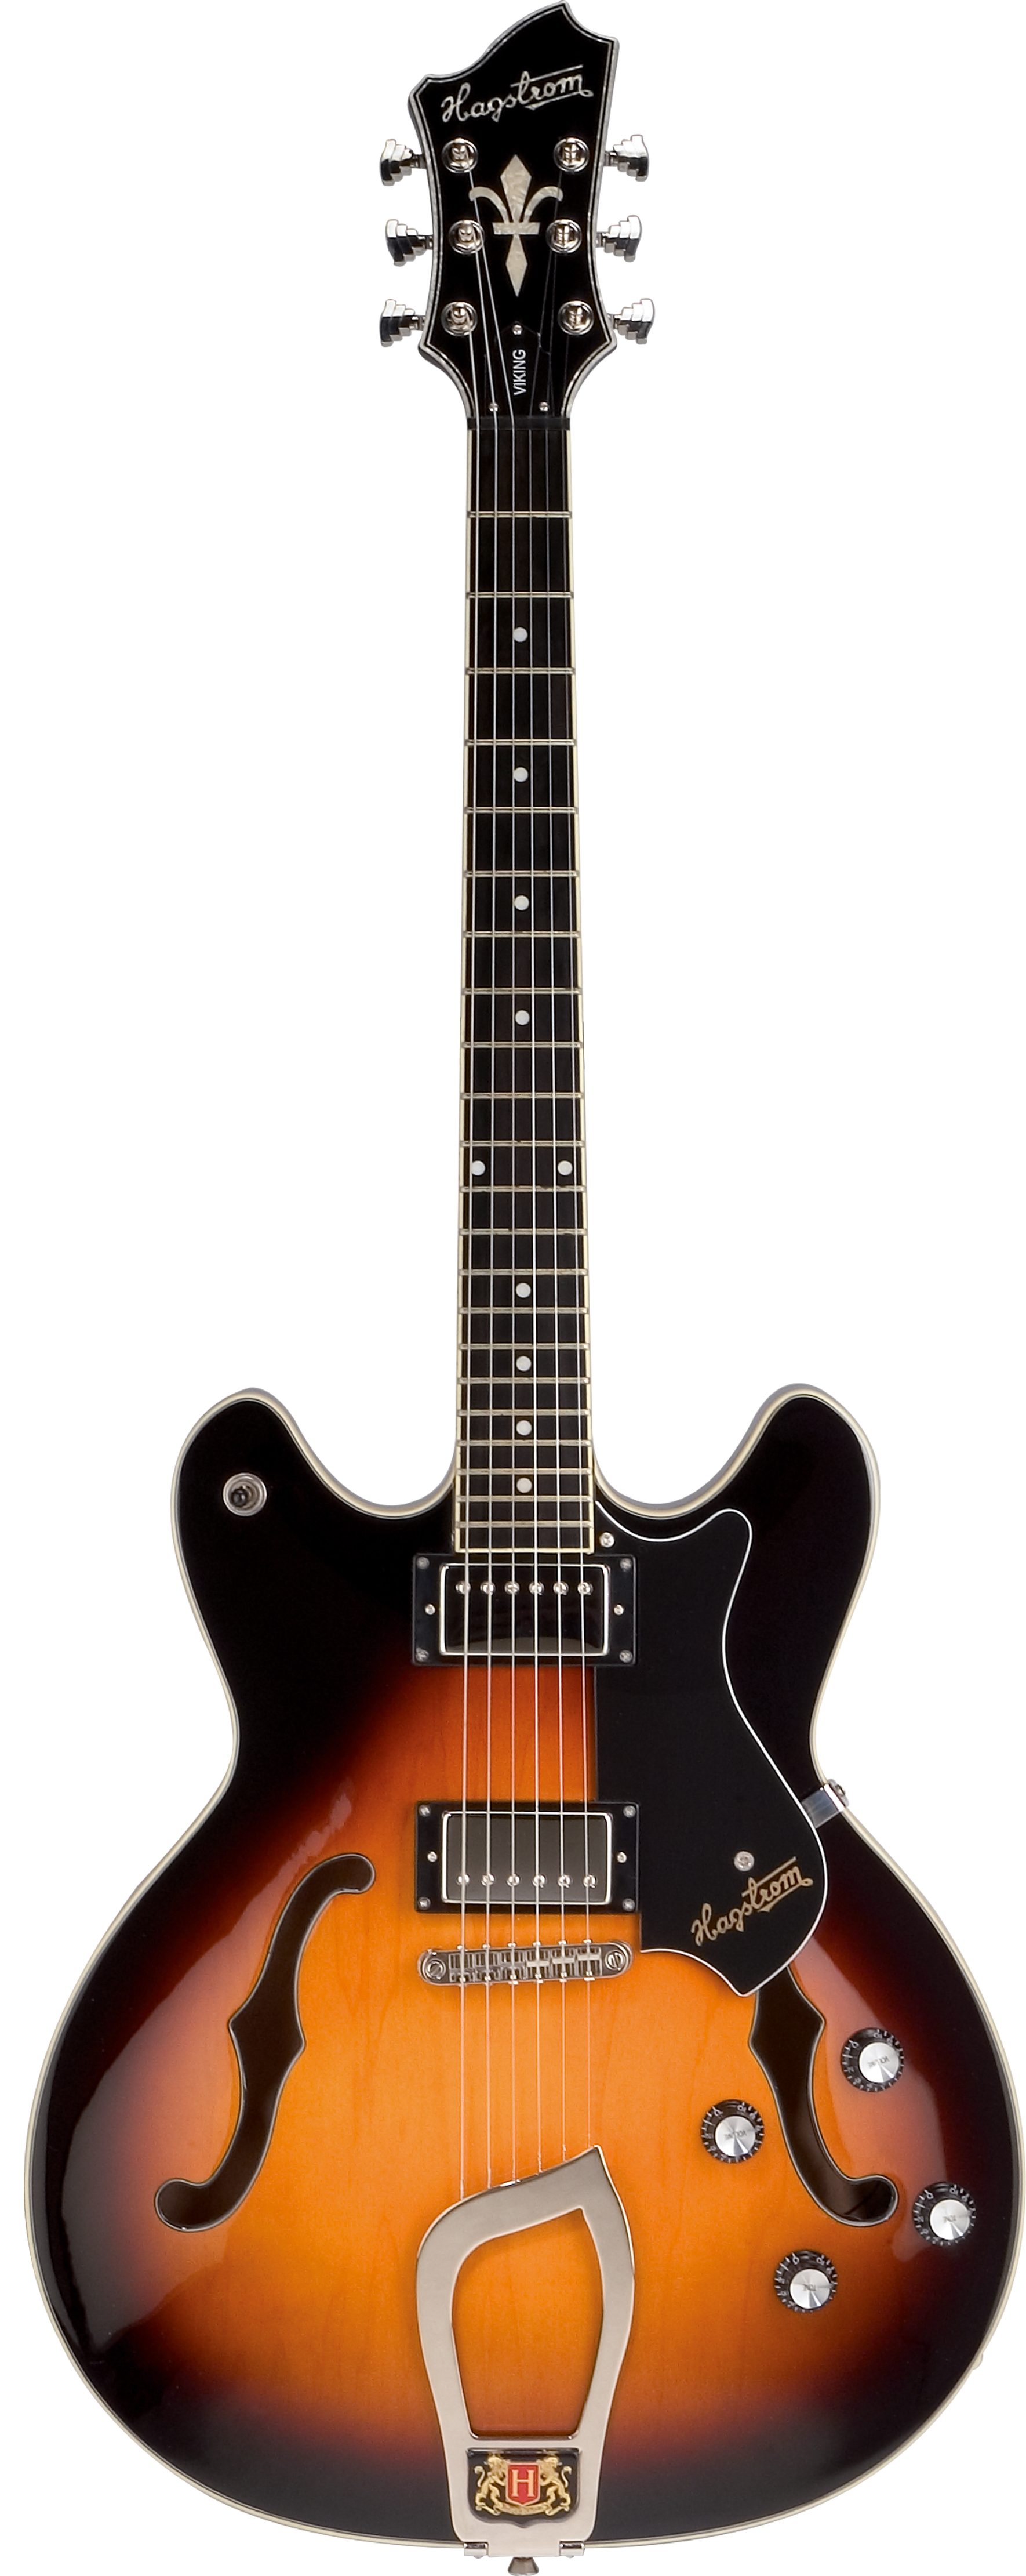 Hagstrom Viking - Tobacco Sunburst